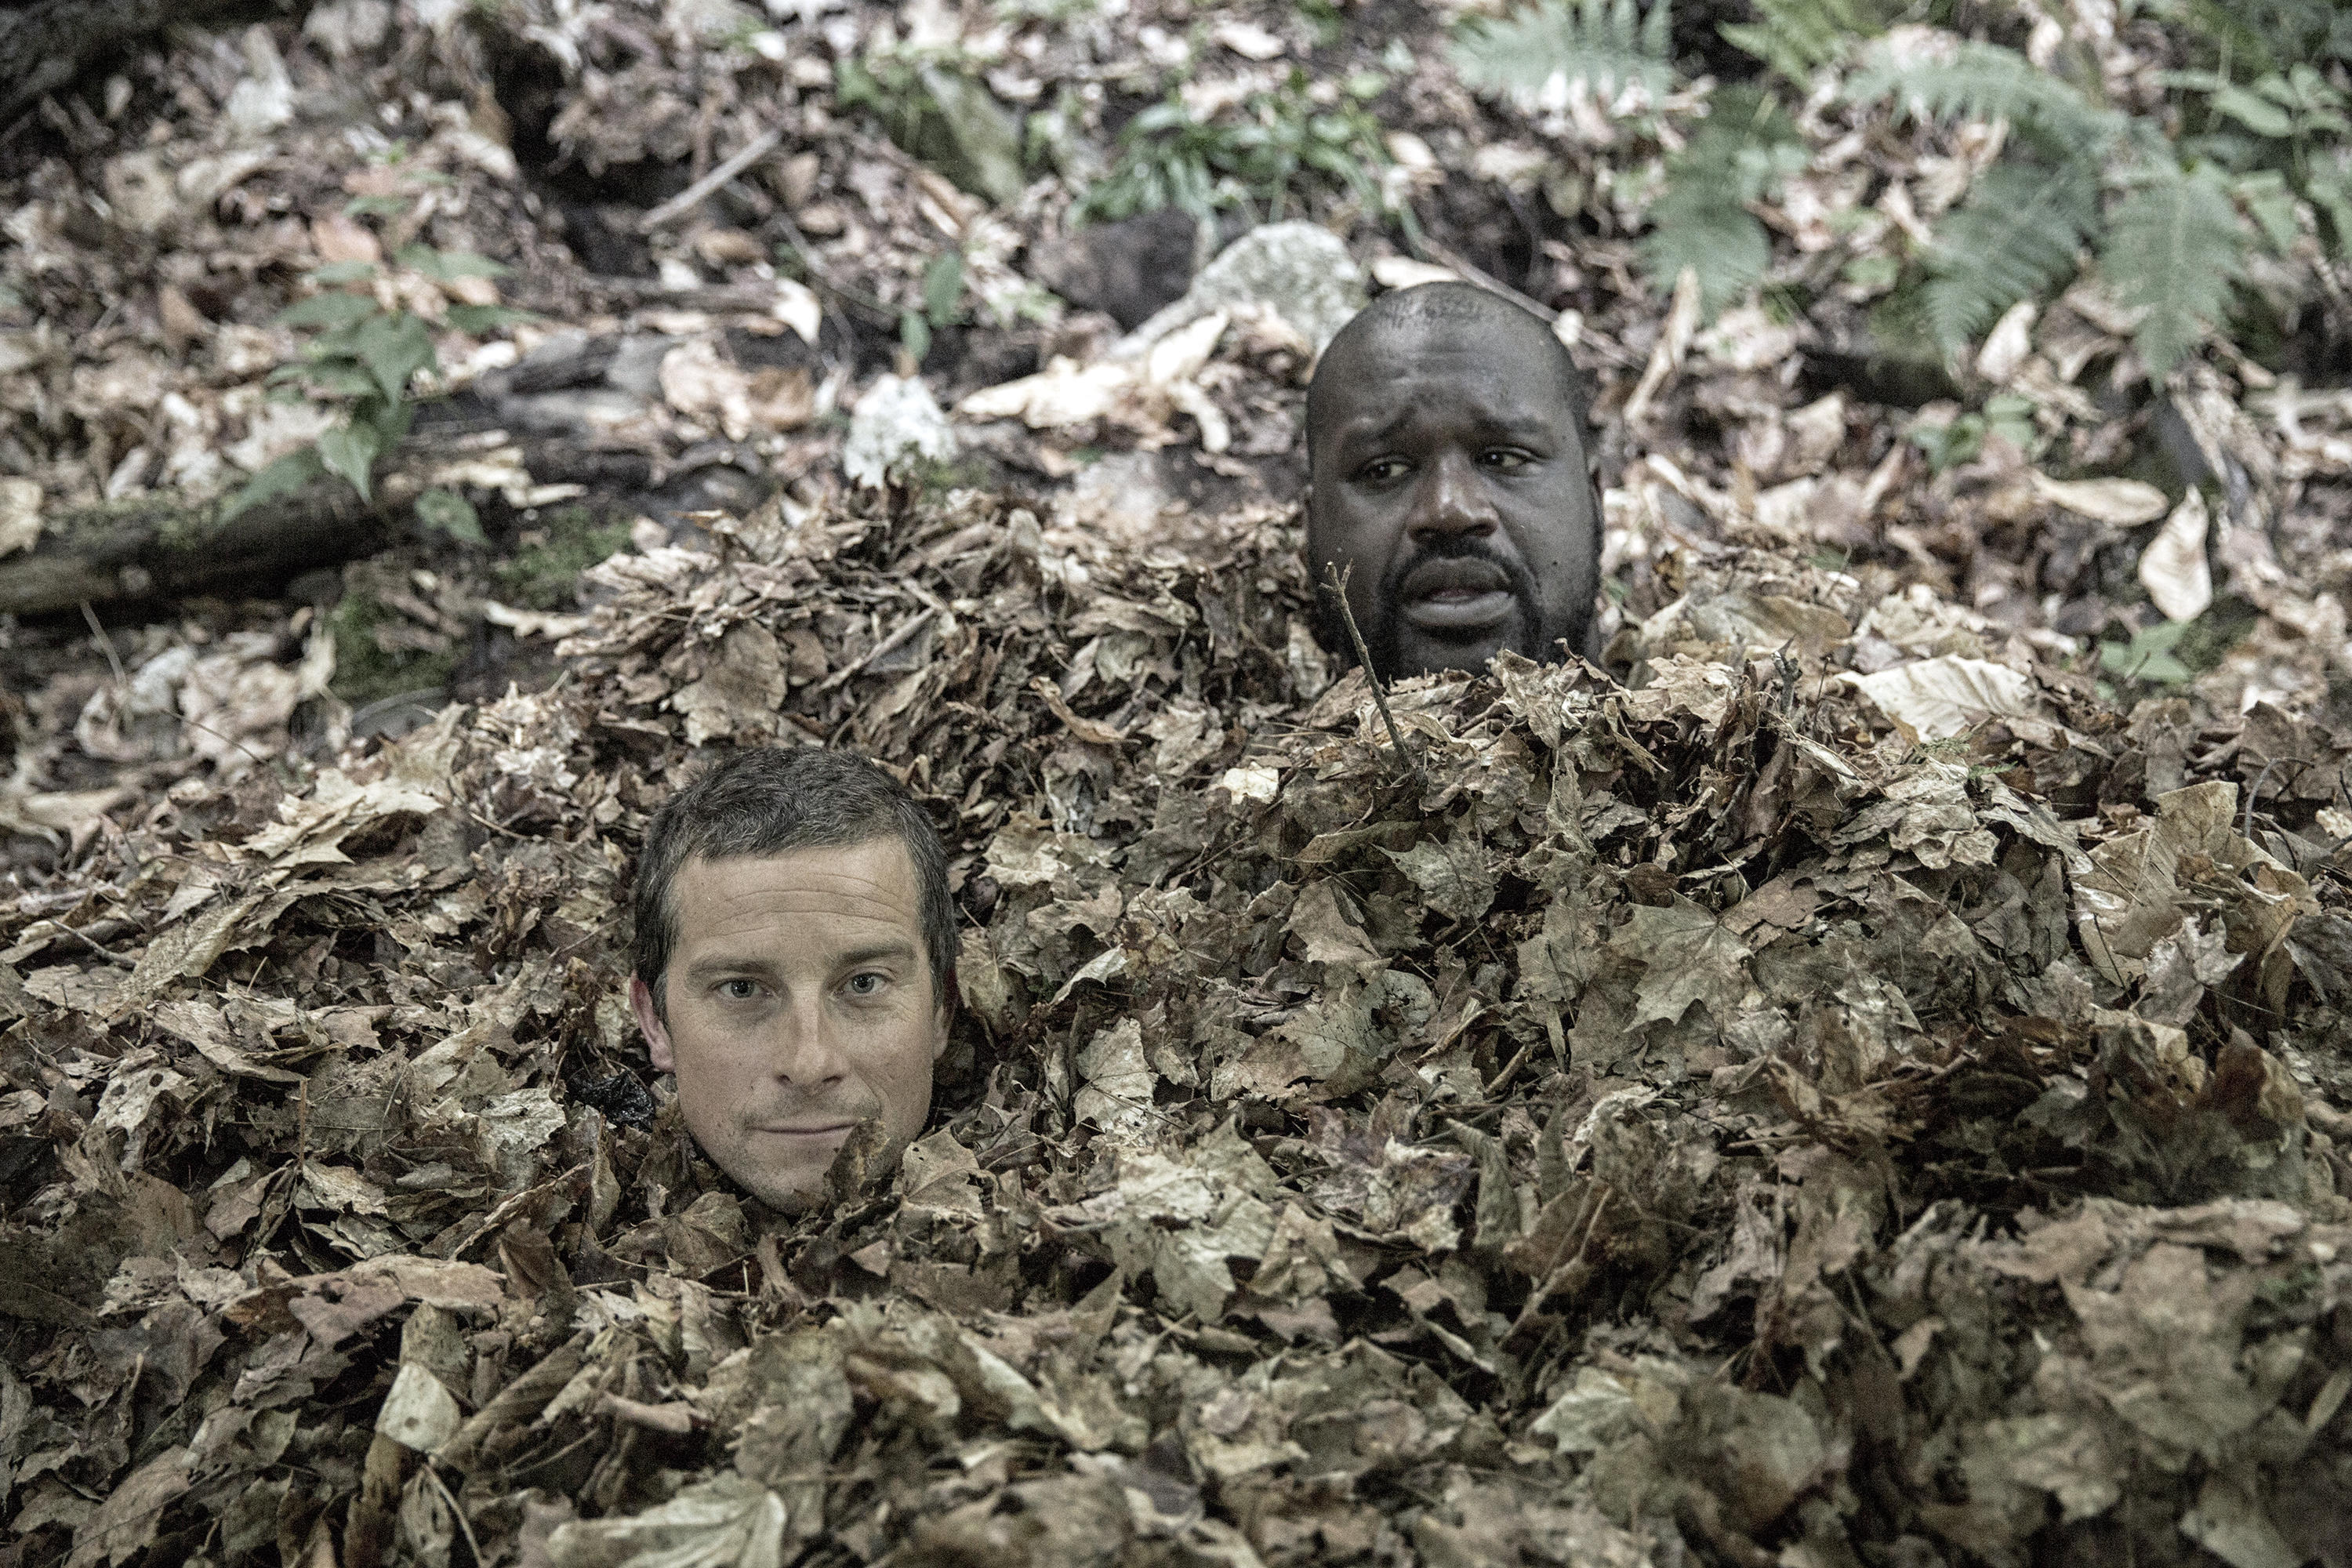 Bear Grylls and Shaquille O'Neal stick their heads out from a pile of leaves